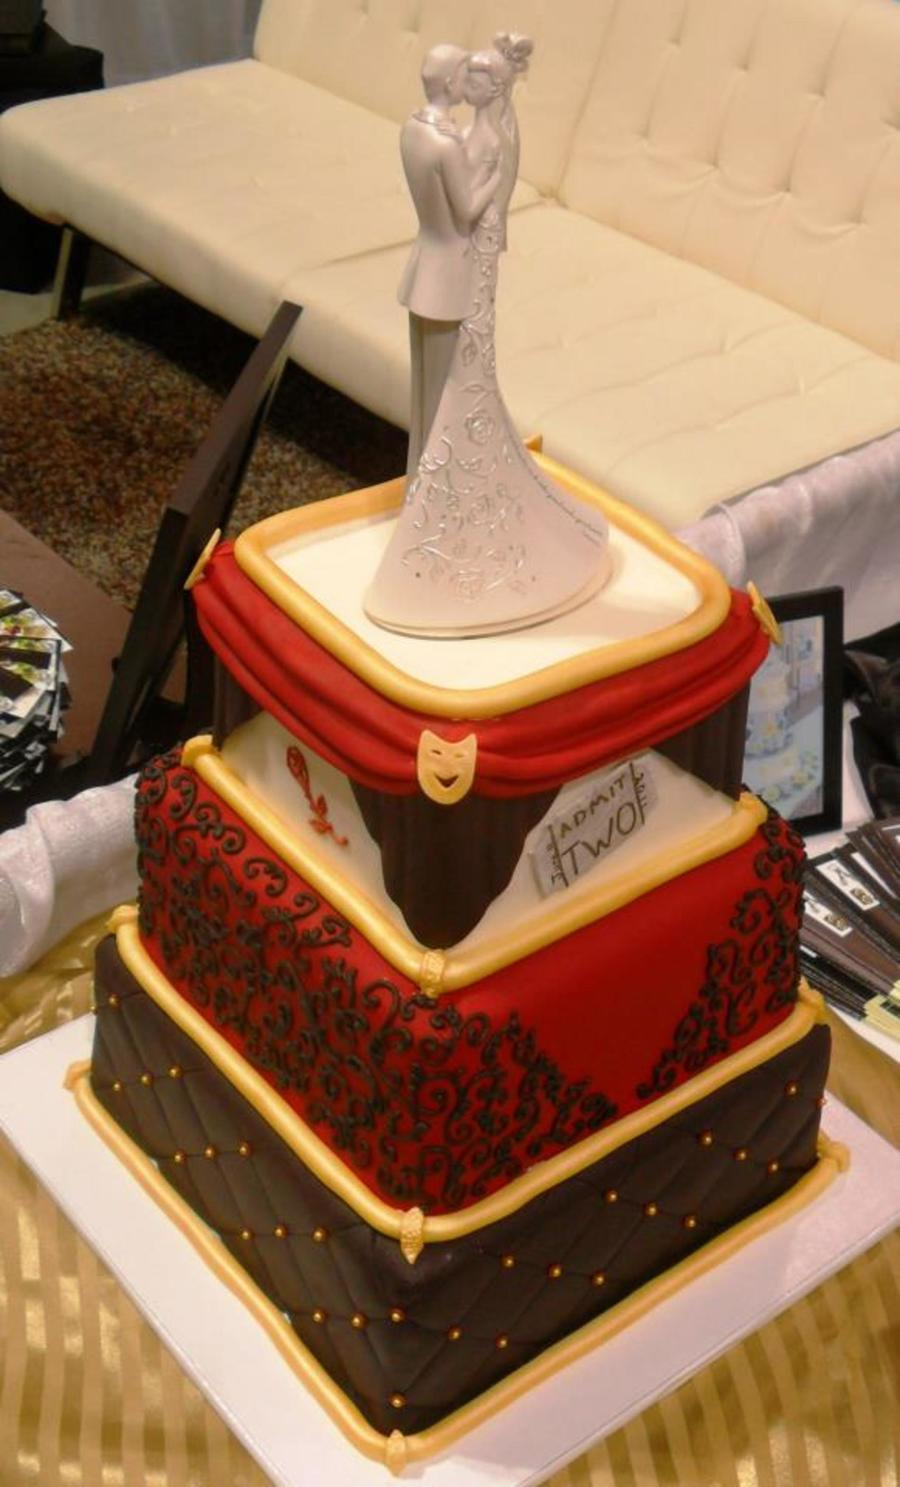 Theater Themed Wedding Cake I Did For The Southern Bridal Show In Charleston Sc While At Abbies